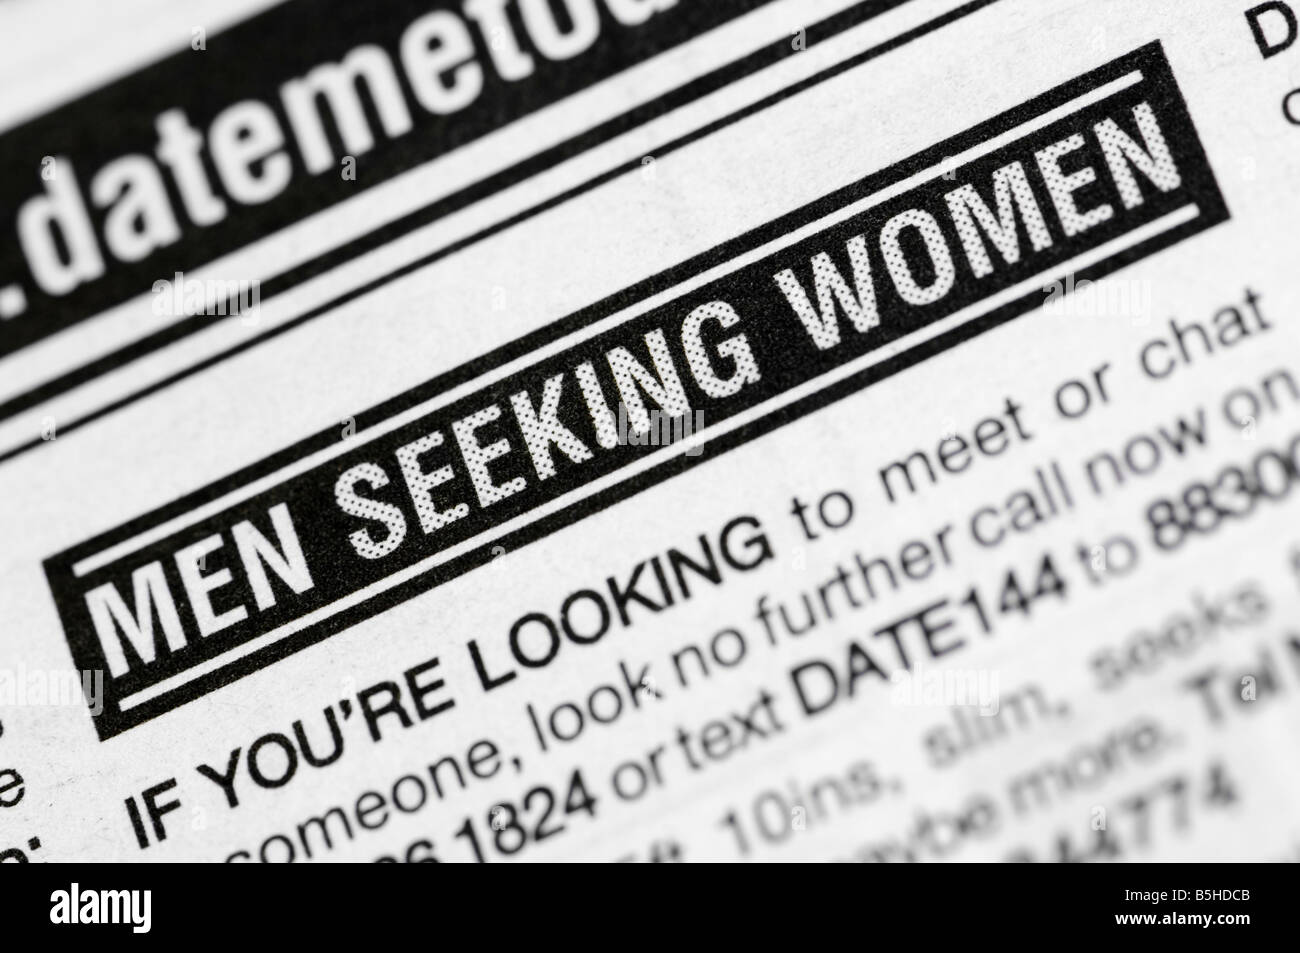 Fayetteville classified women seeking men